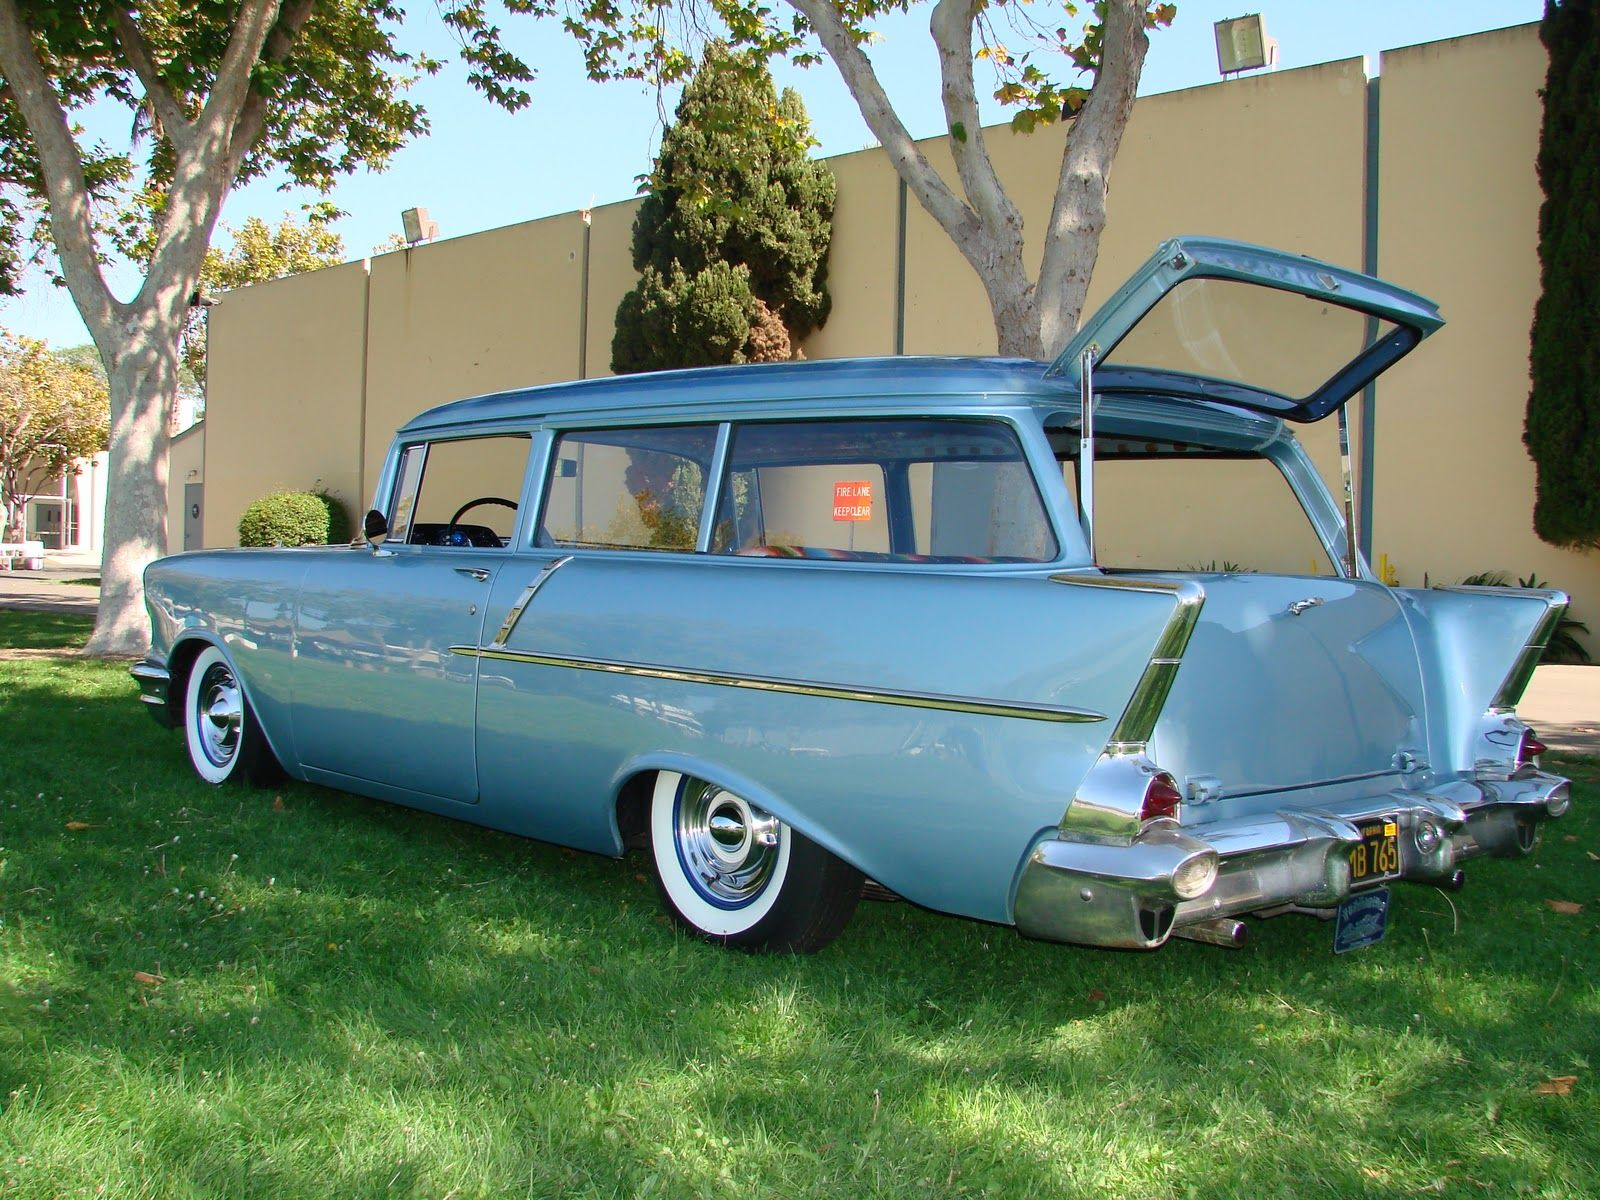 1955 chevrolet handyman 2 door wagon street rod - 1957 Chevrolet One Fifty Handyman Station Wagon